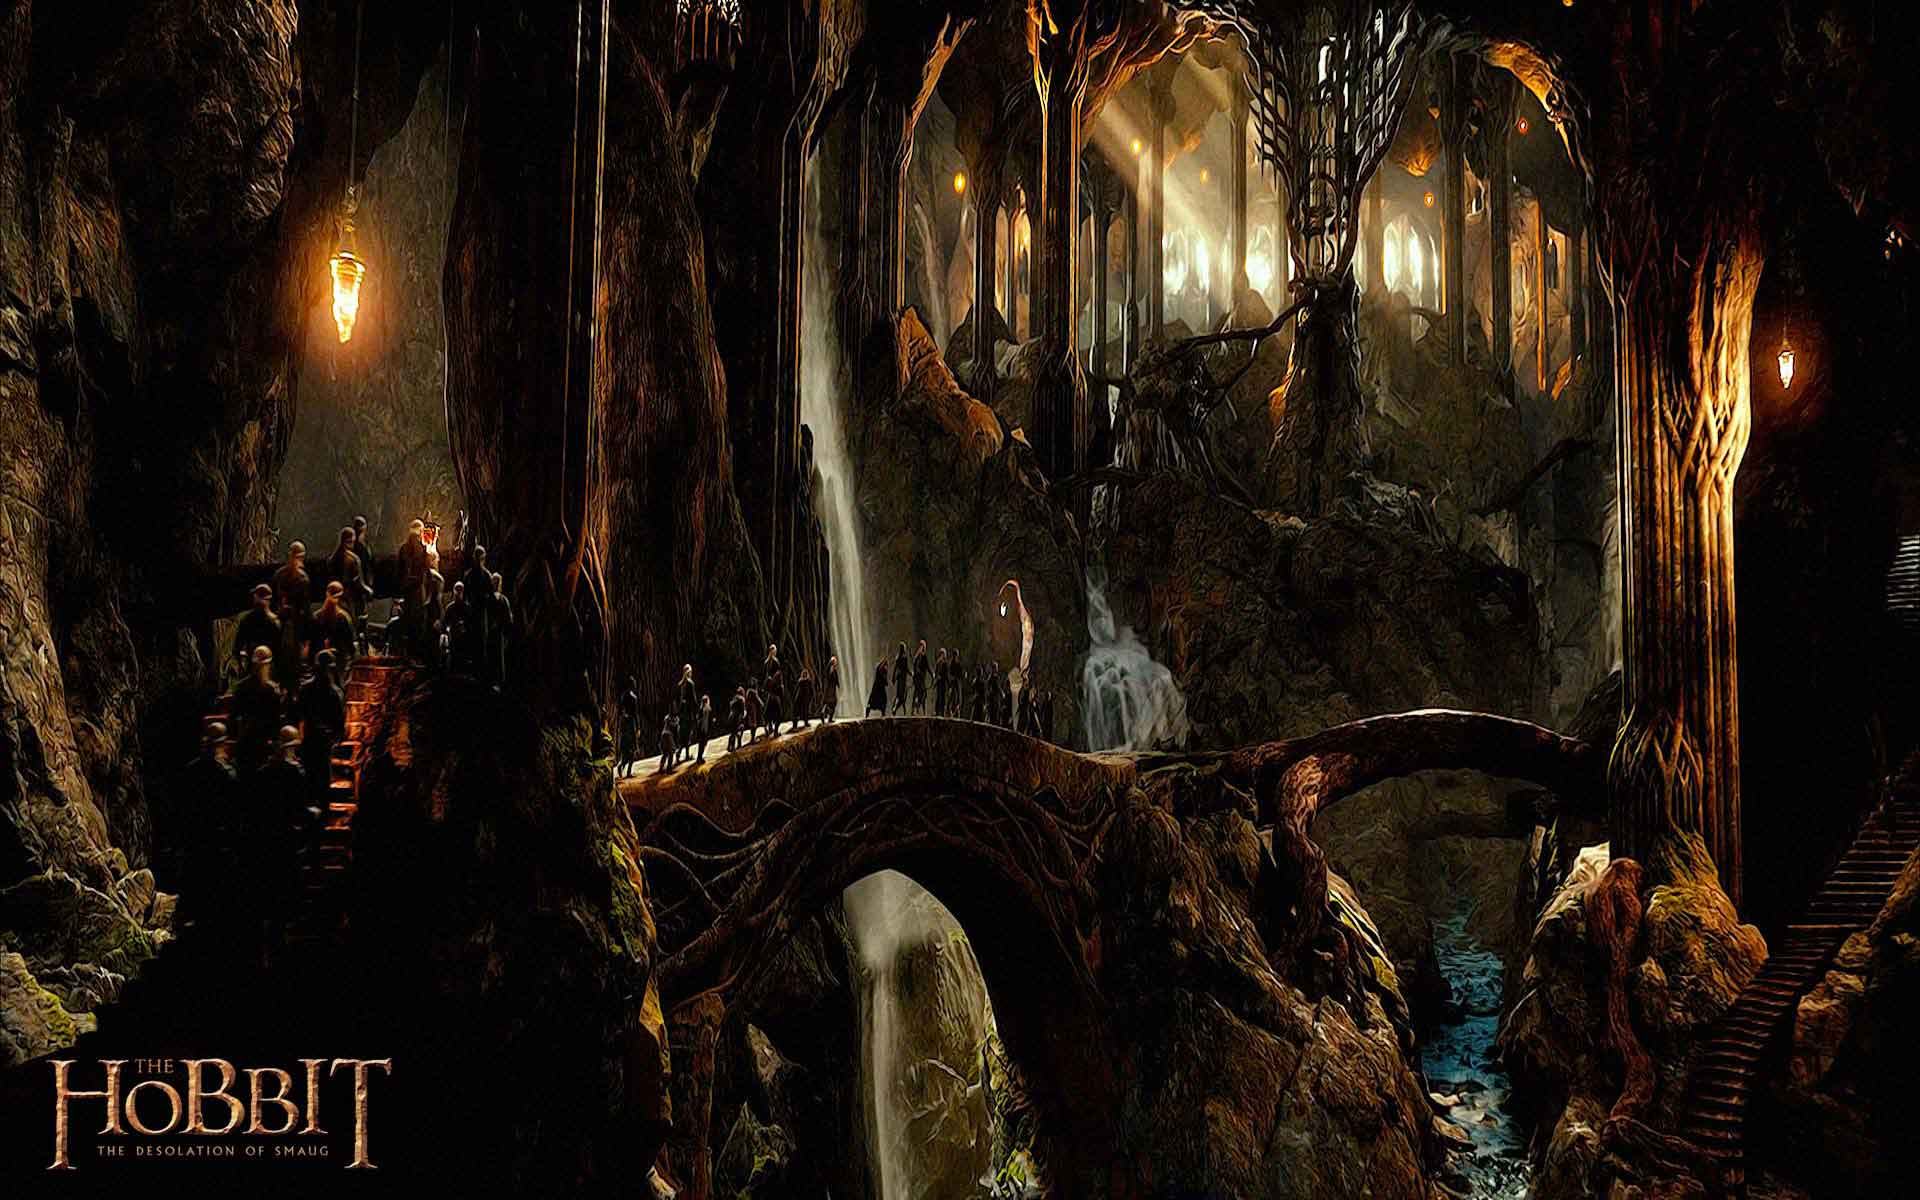 You know WETA has the Midas Smaug The Hobbit 2013 Flying